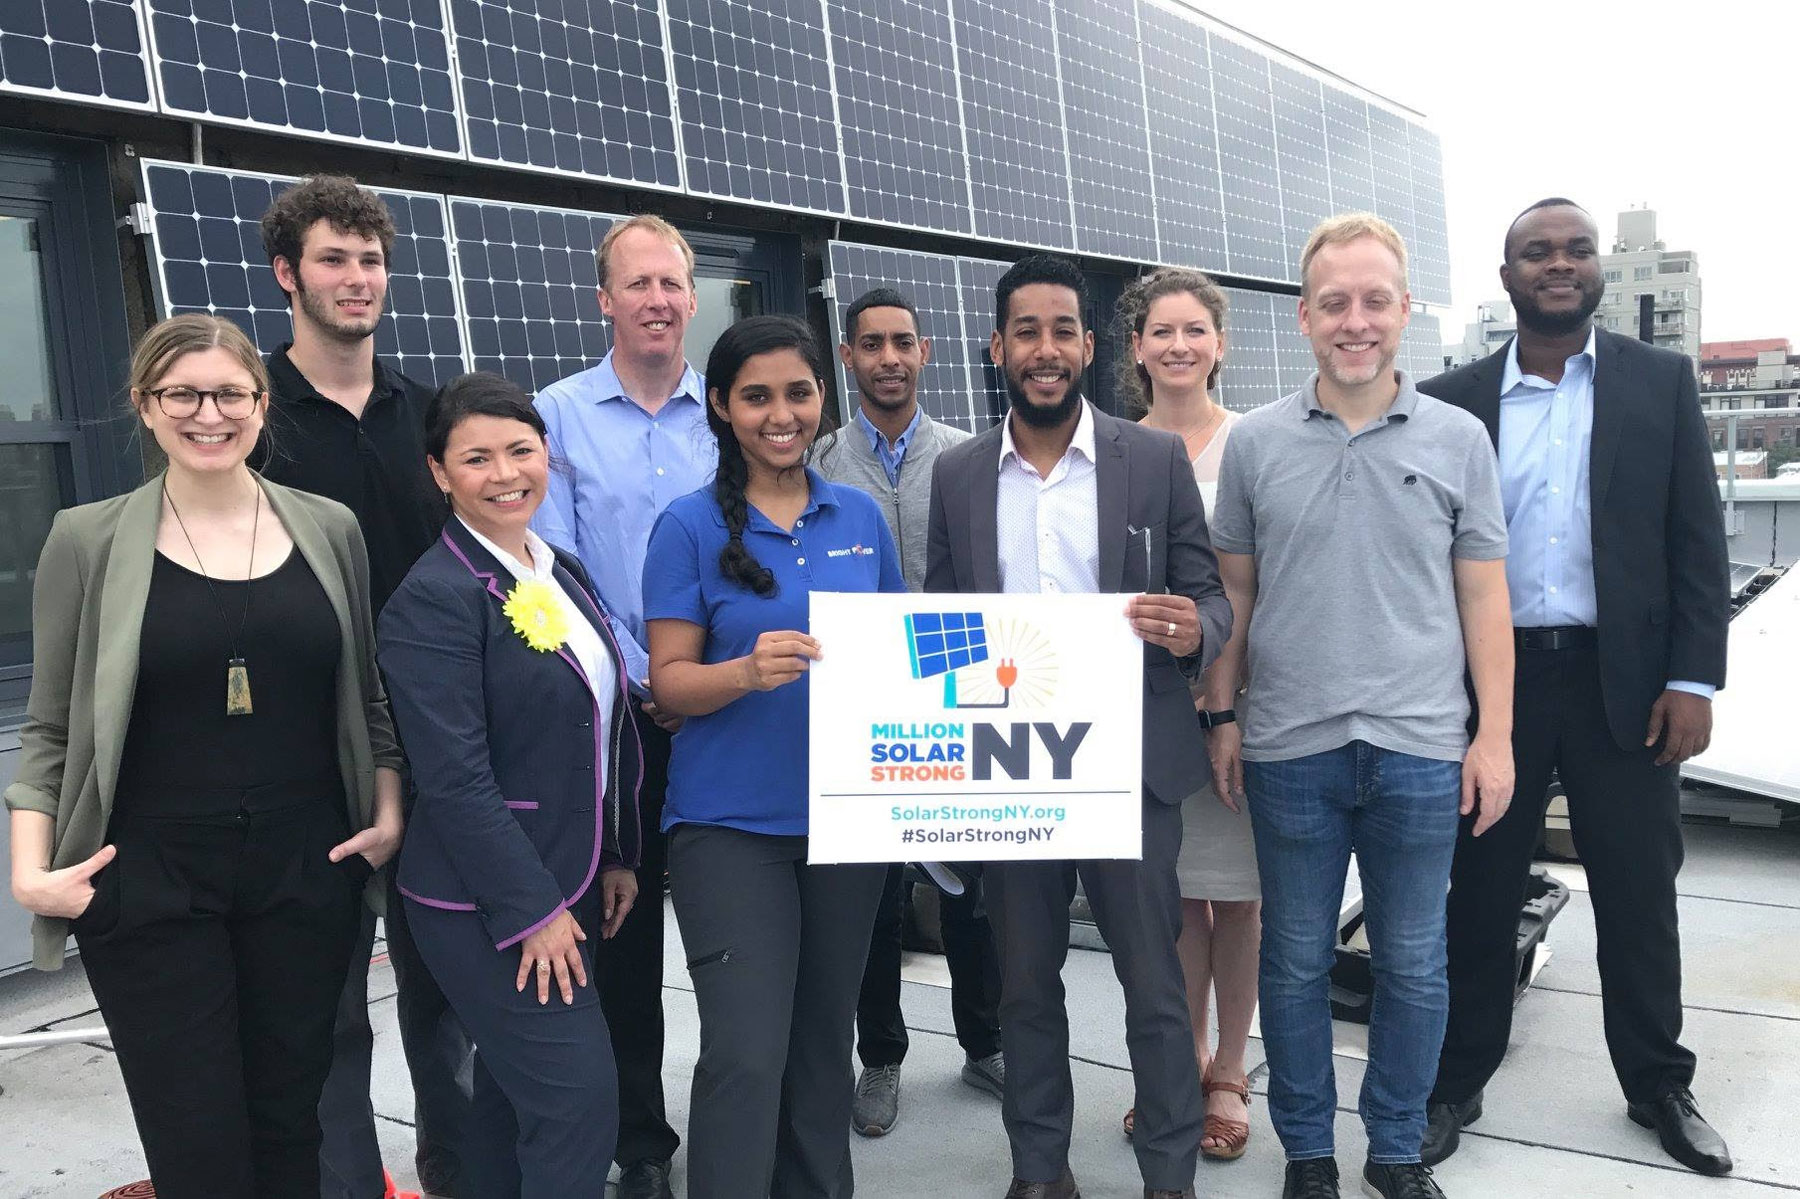 Million Solar Strong NY poses in front of solar panel